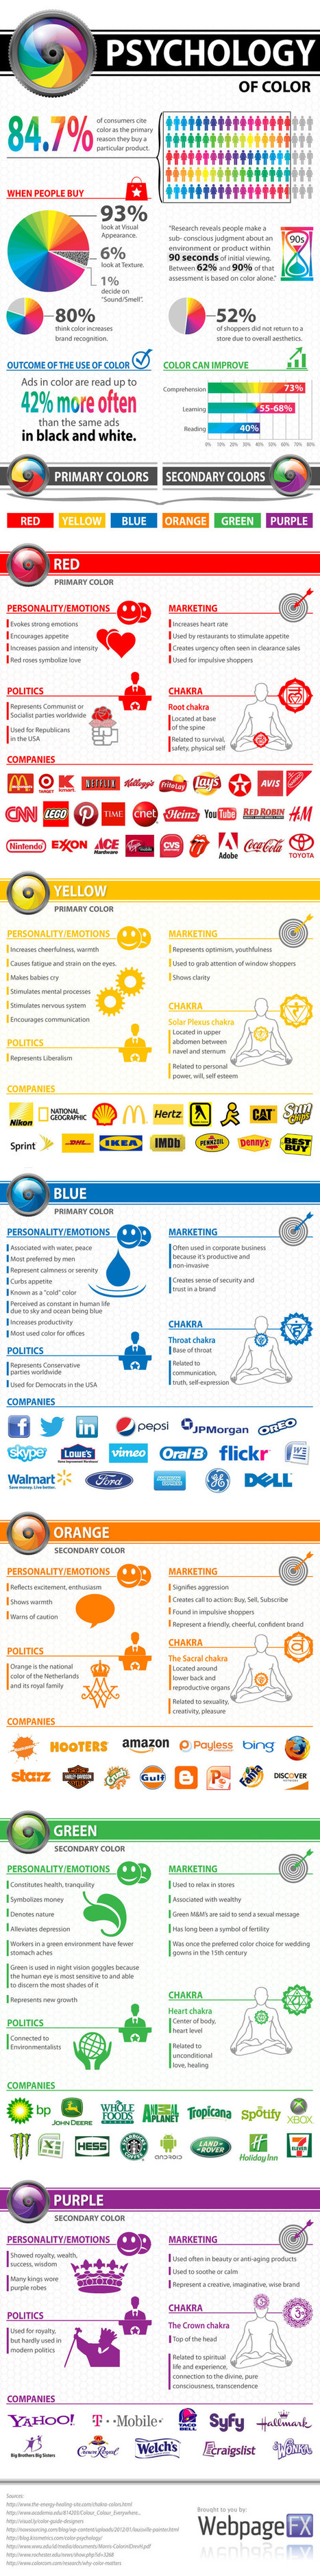 Psychology of Color in Marketing Infographic   Public Relations   Scoop.it